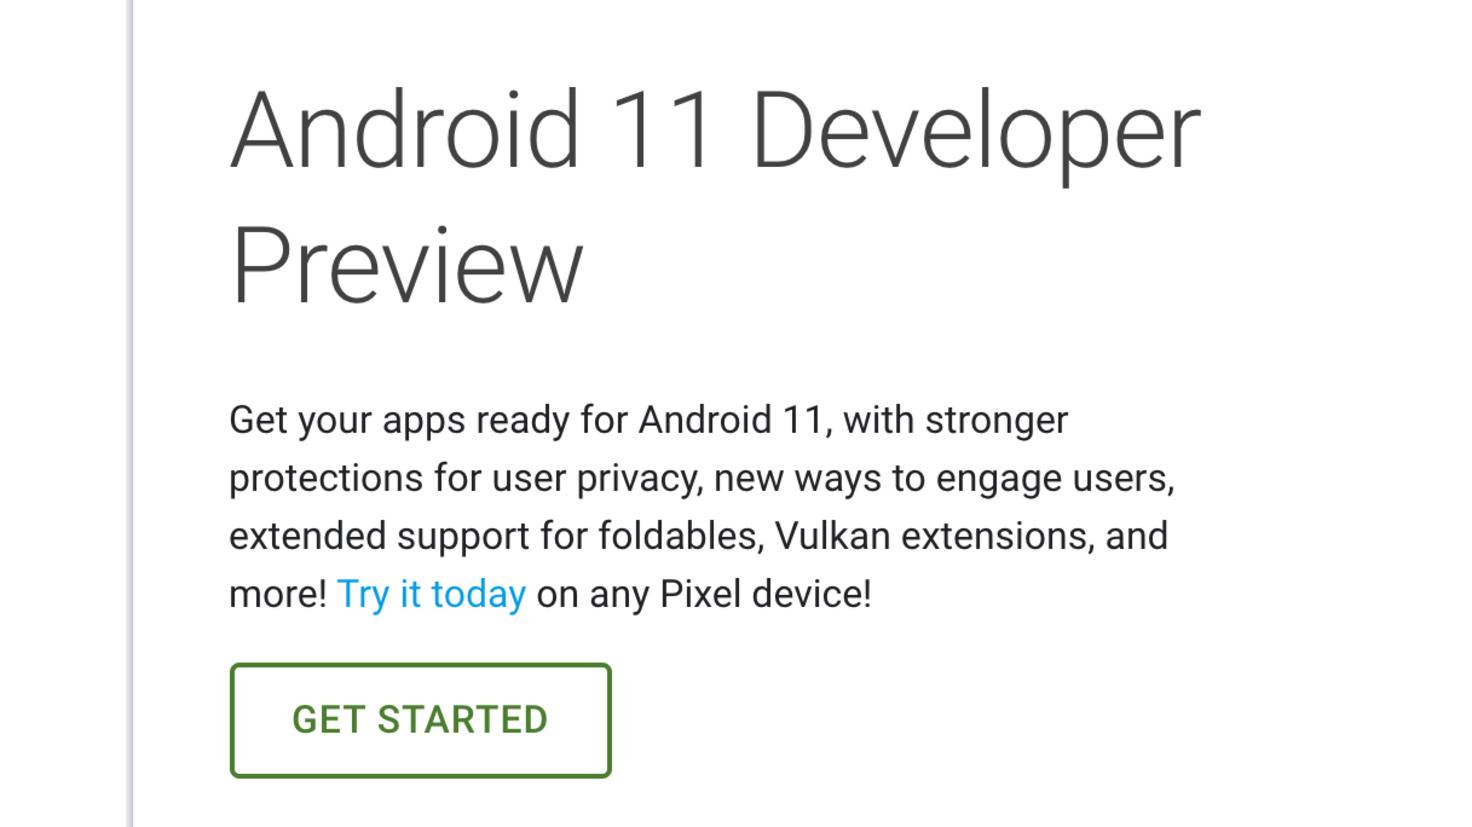 android-11-developer-preview-webseite